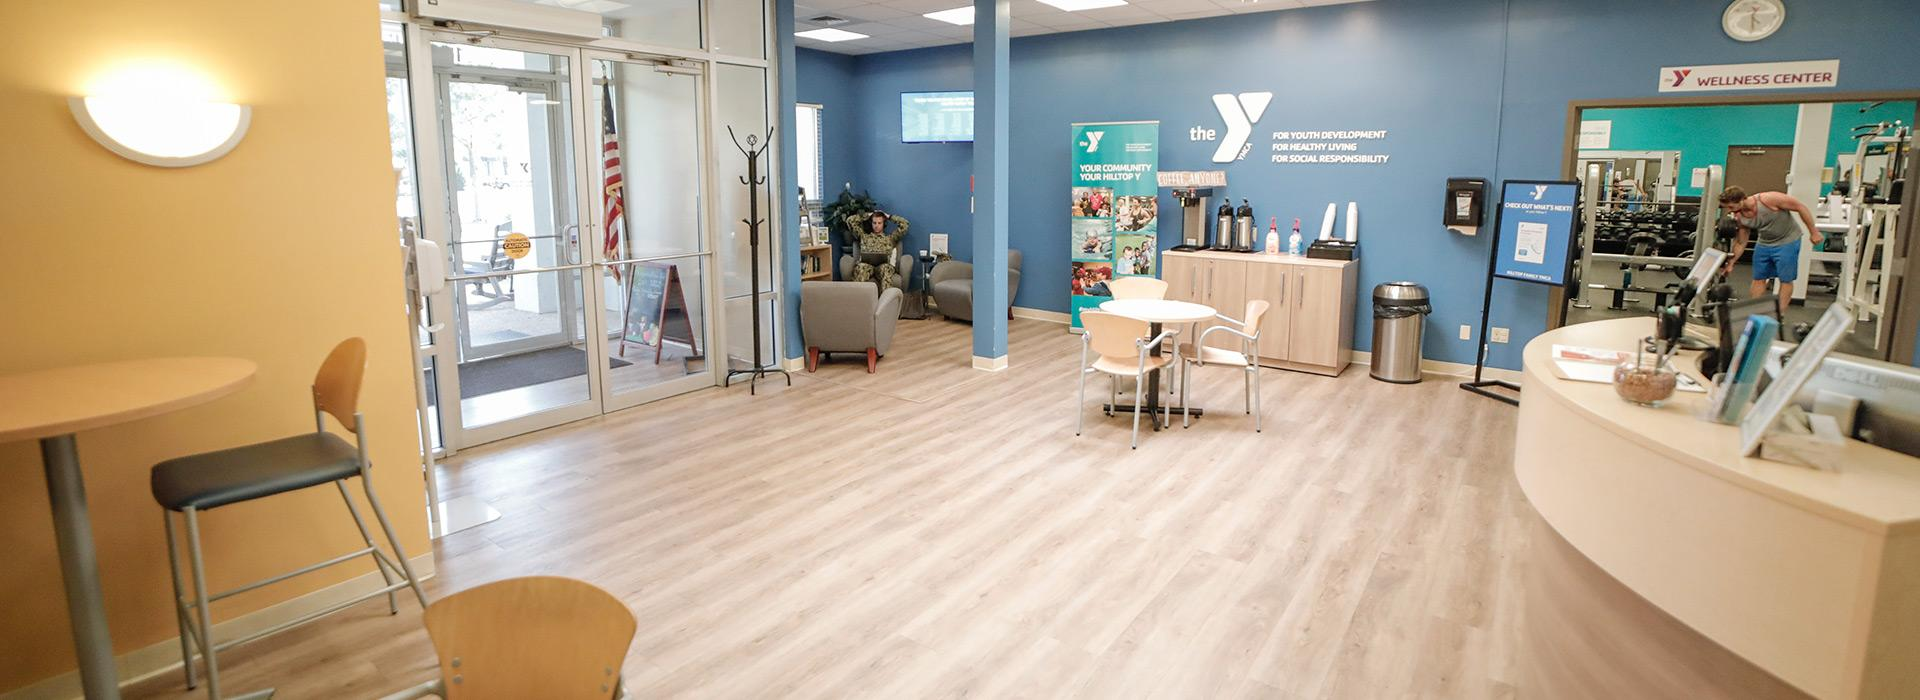 Newly renovated lobby and member connection space at the Hilltop Family YMCA